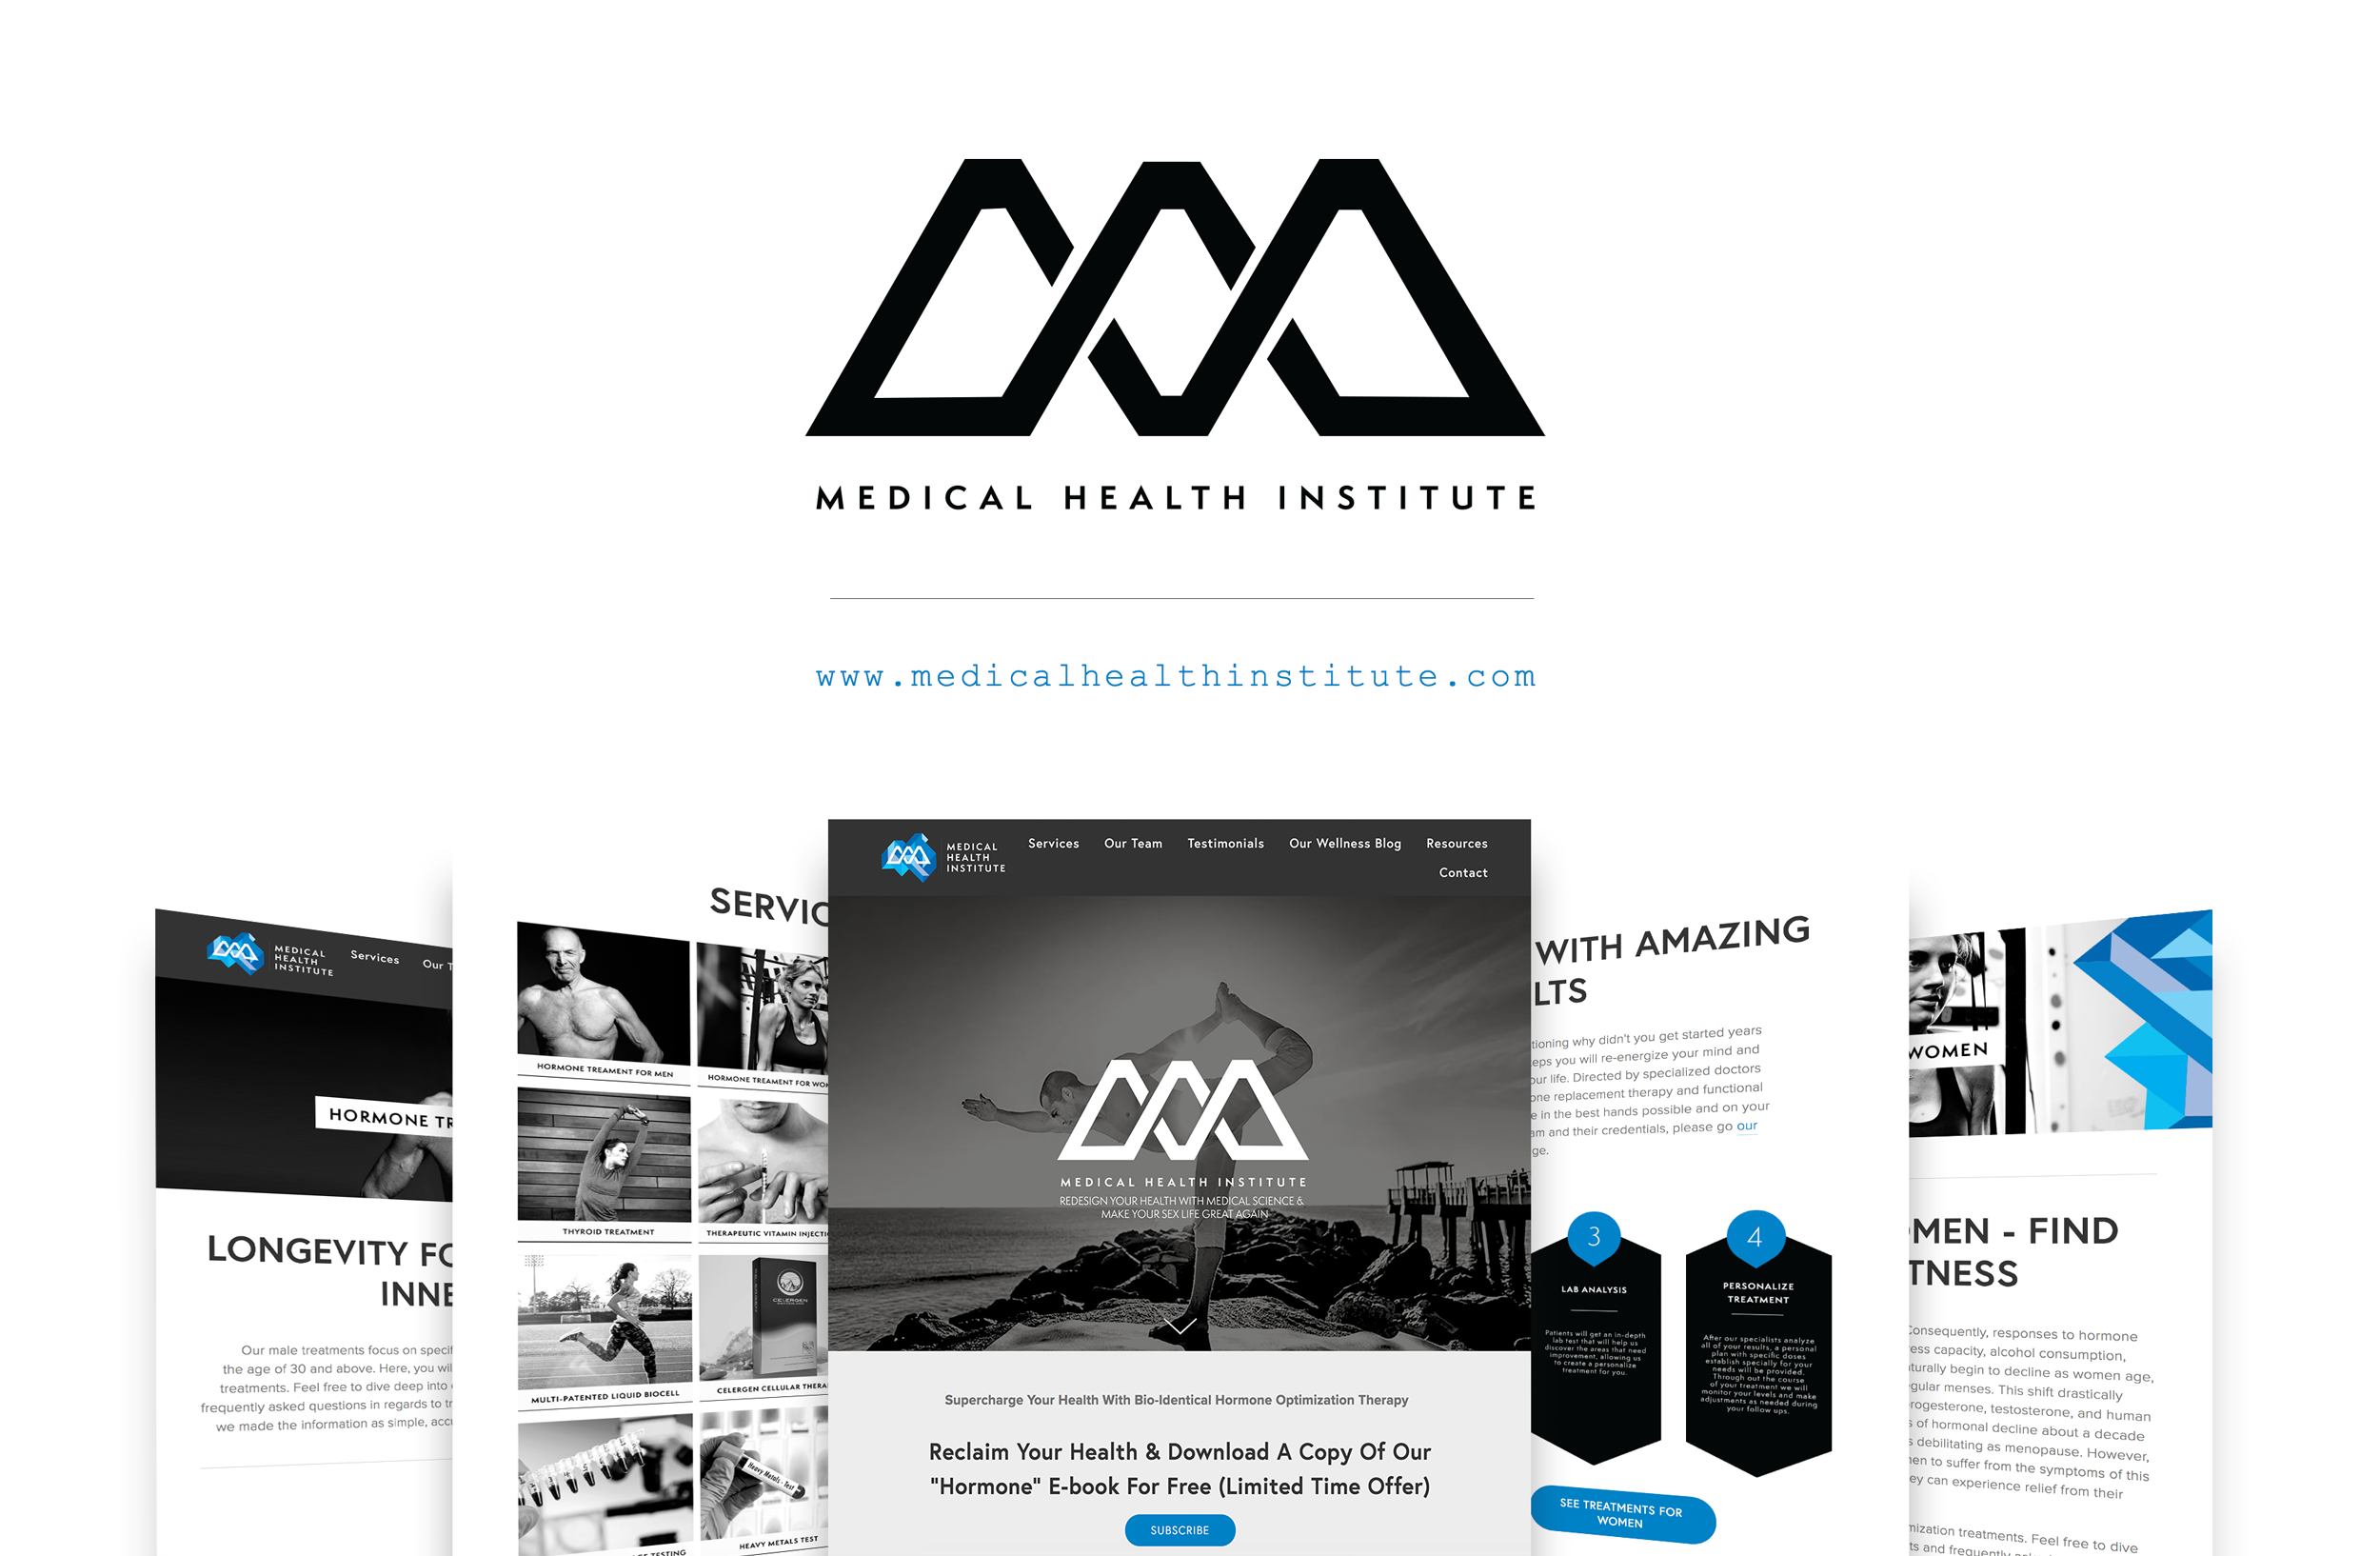 Web Design + Management |   medicalhealthinstitute.com